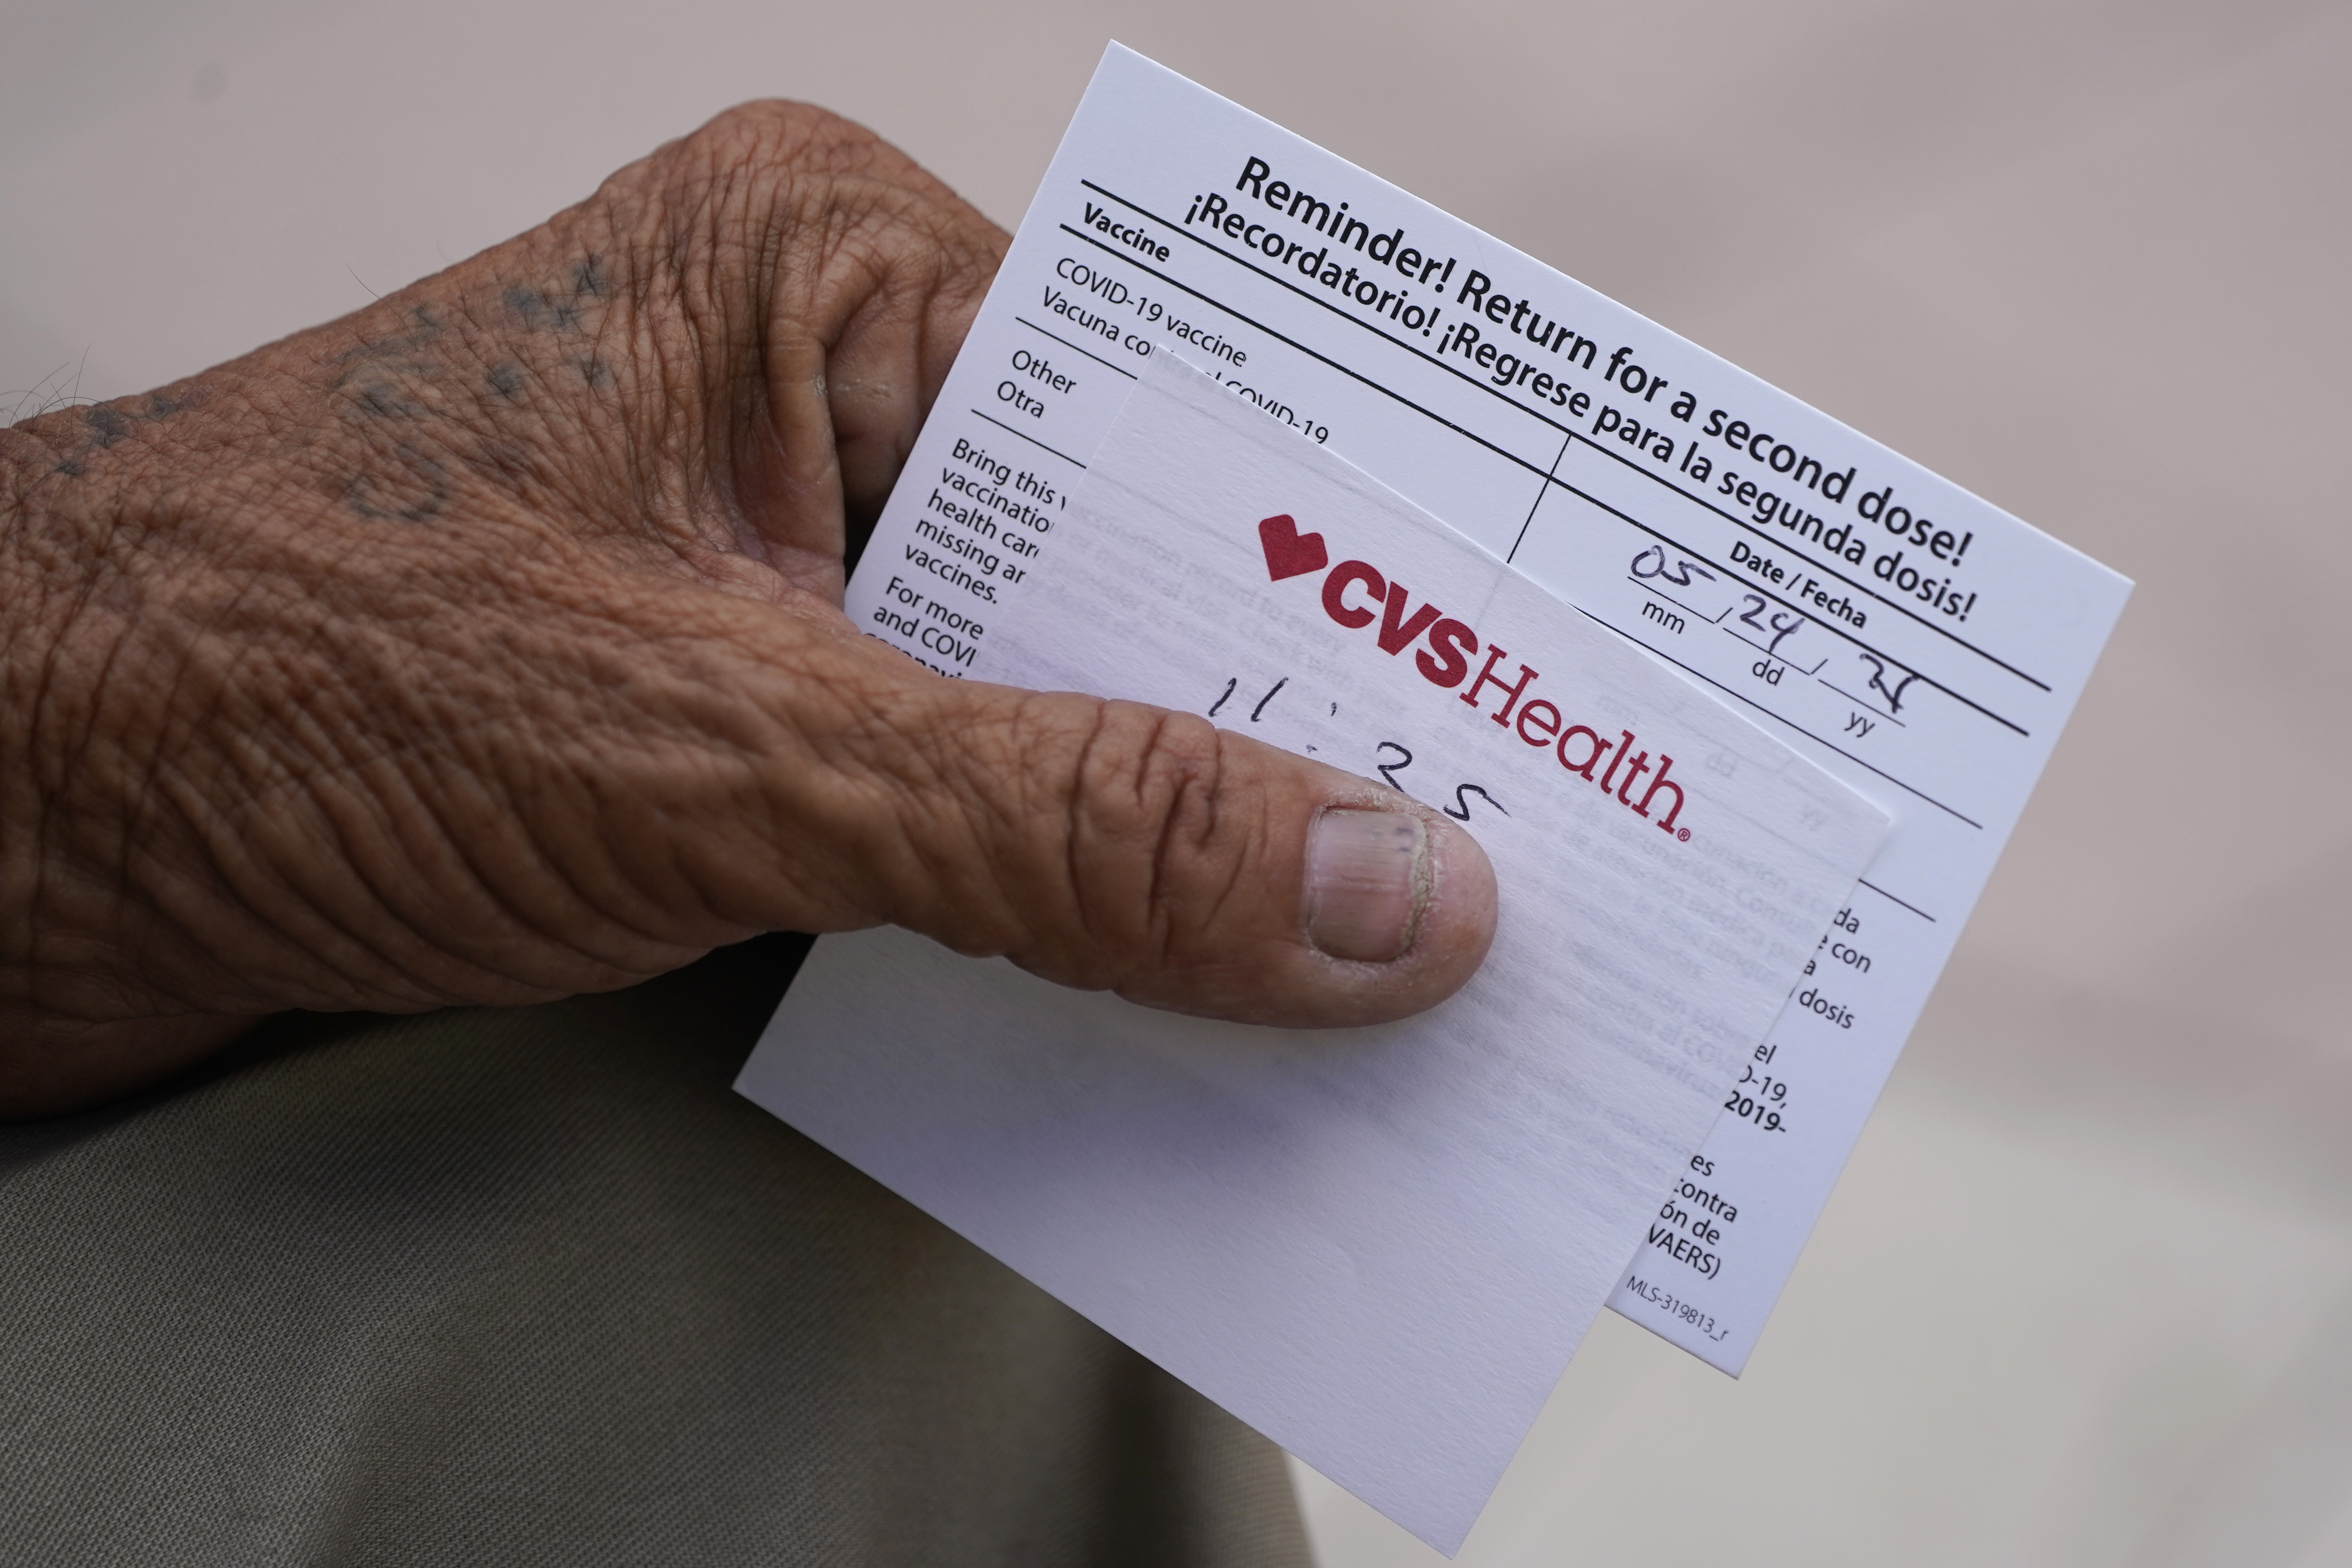 There are online options to keep track of every one of your immunizations, including those COVID-19 shots.